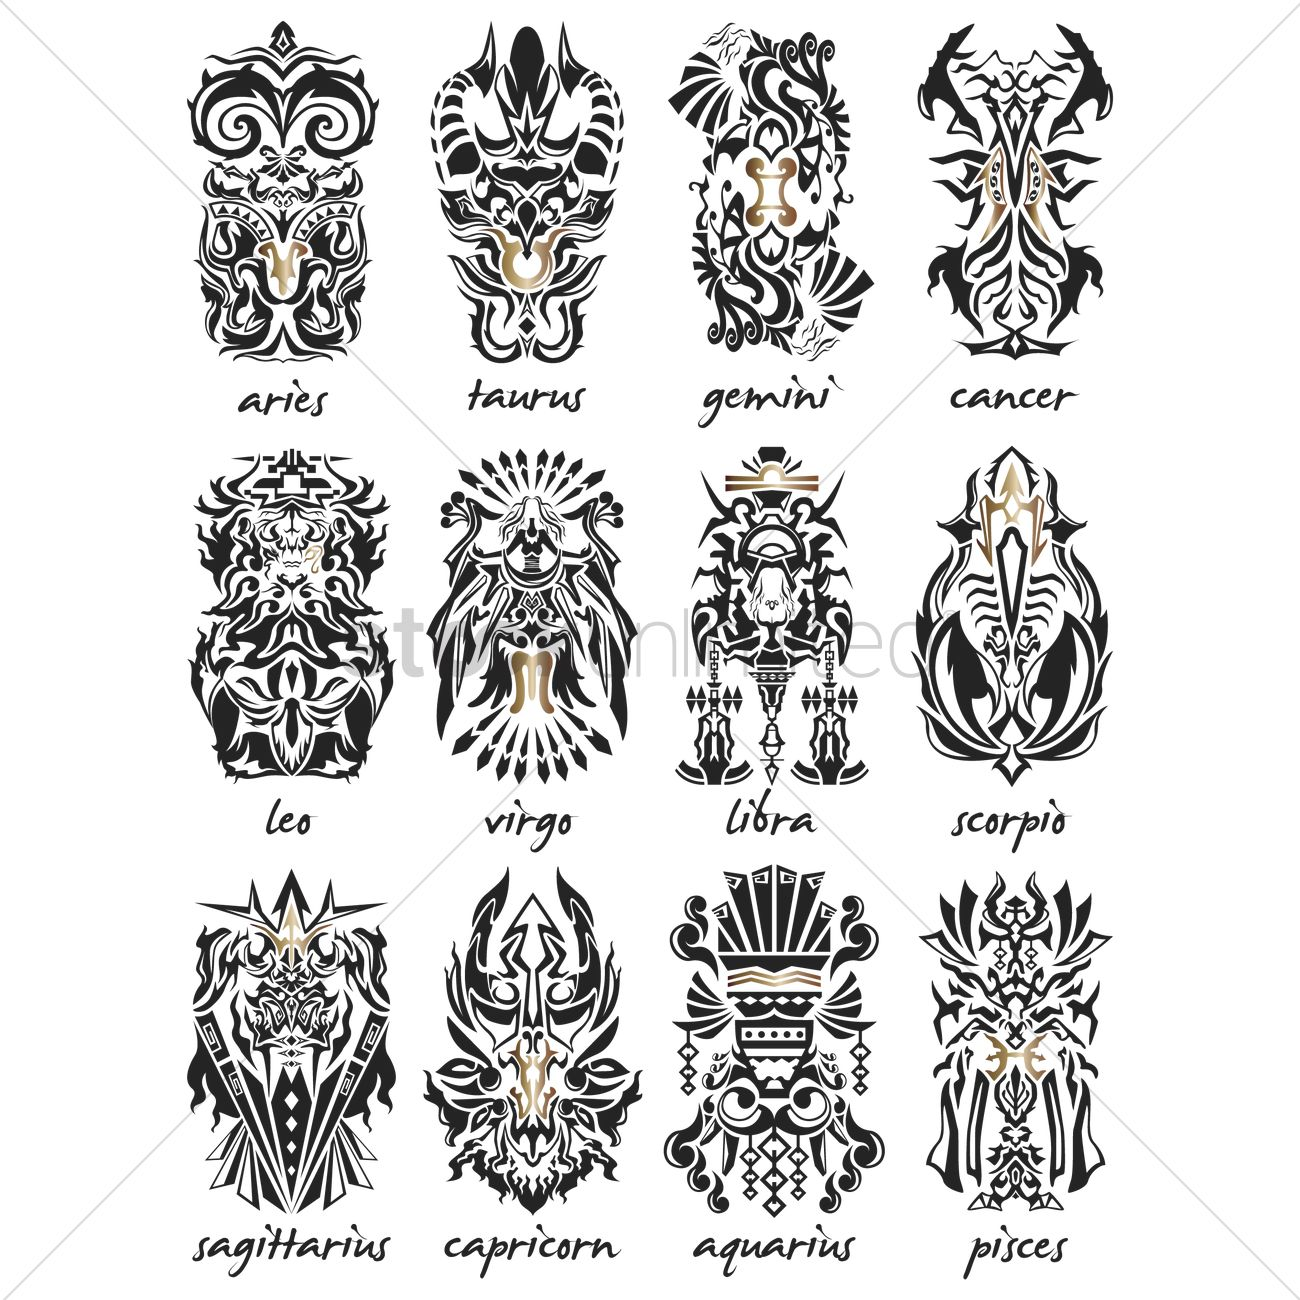 65 Leo Zodiac Sign Tattoos Collection: Collection Of Tattoo Horoscope Designs Vector Image